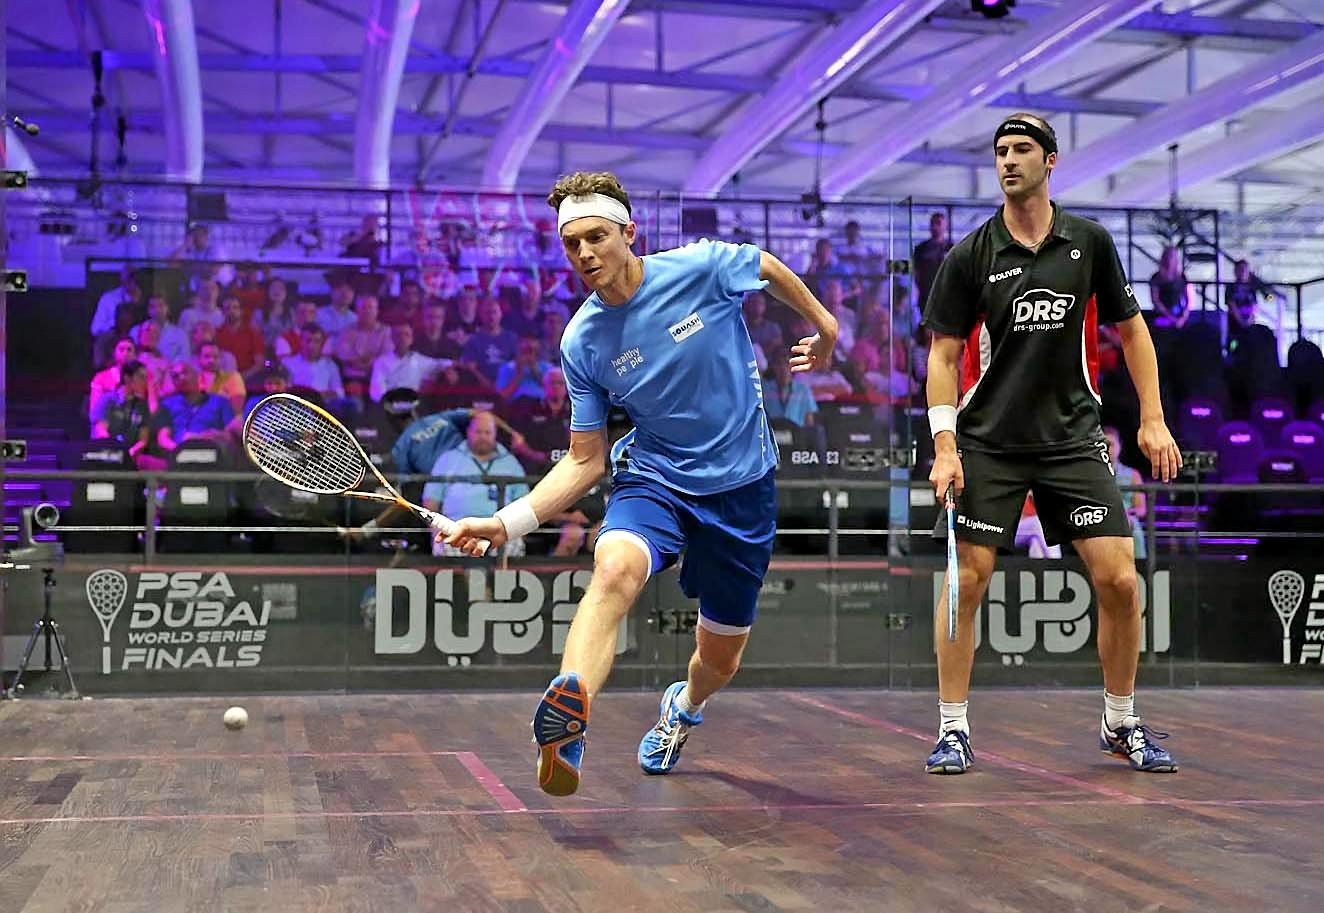 ON TOUR: Cameron Pilley playing in the squash World Series Final in Dubai last year.